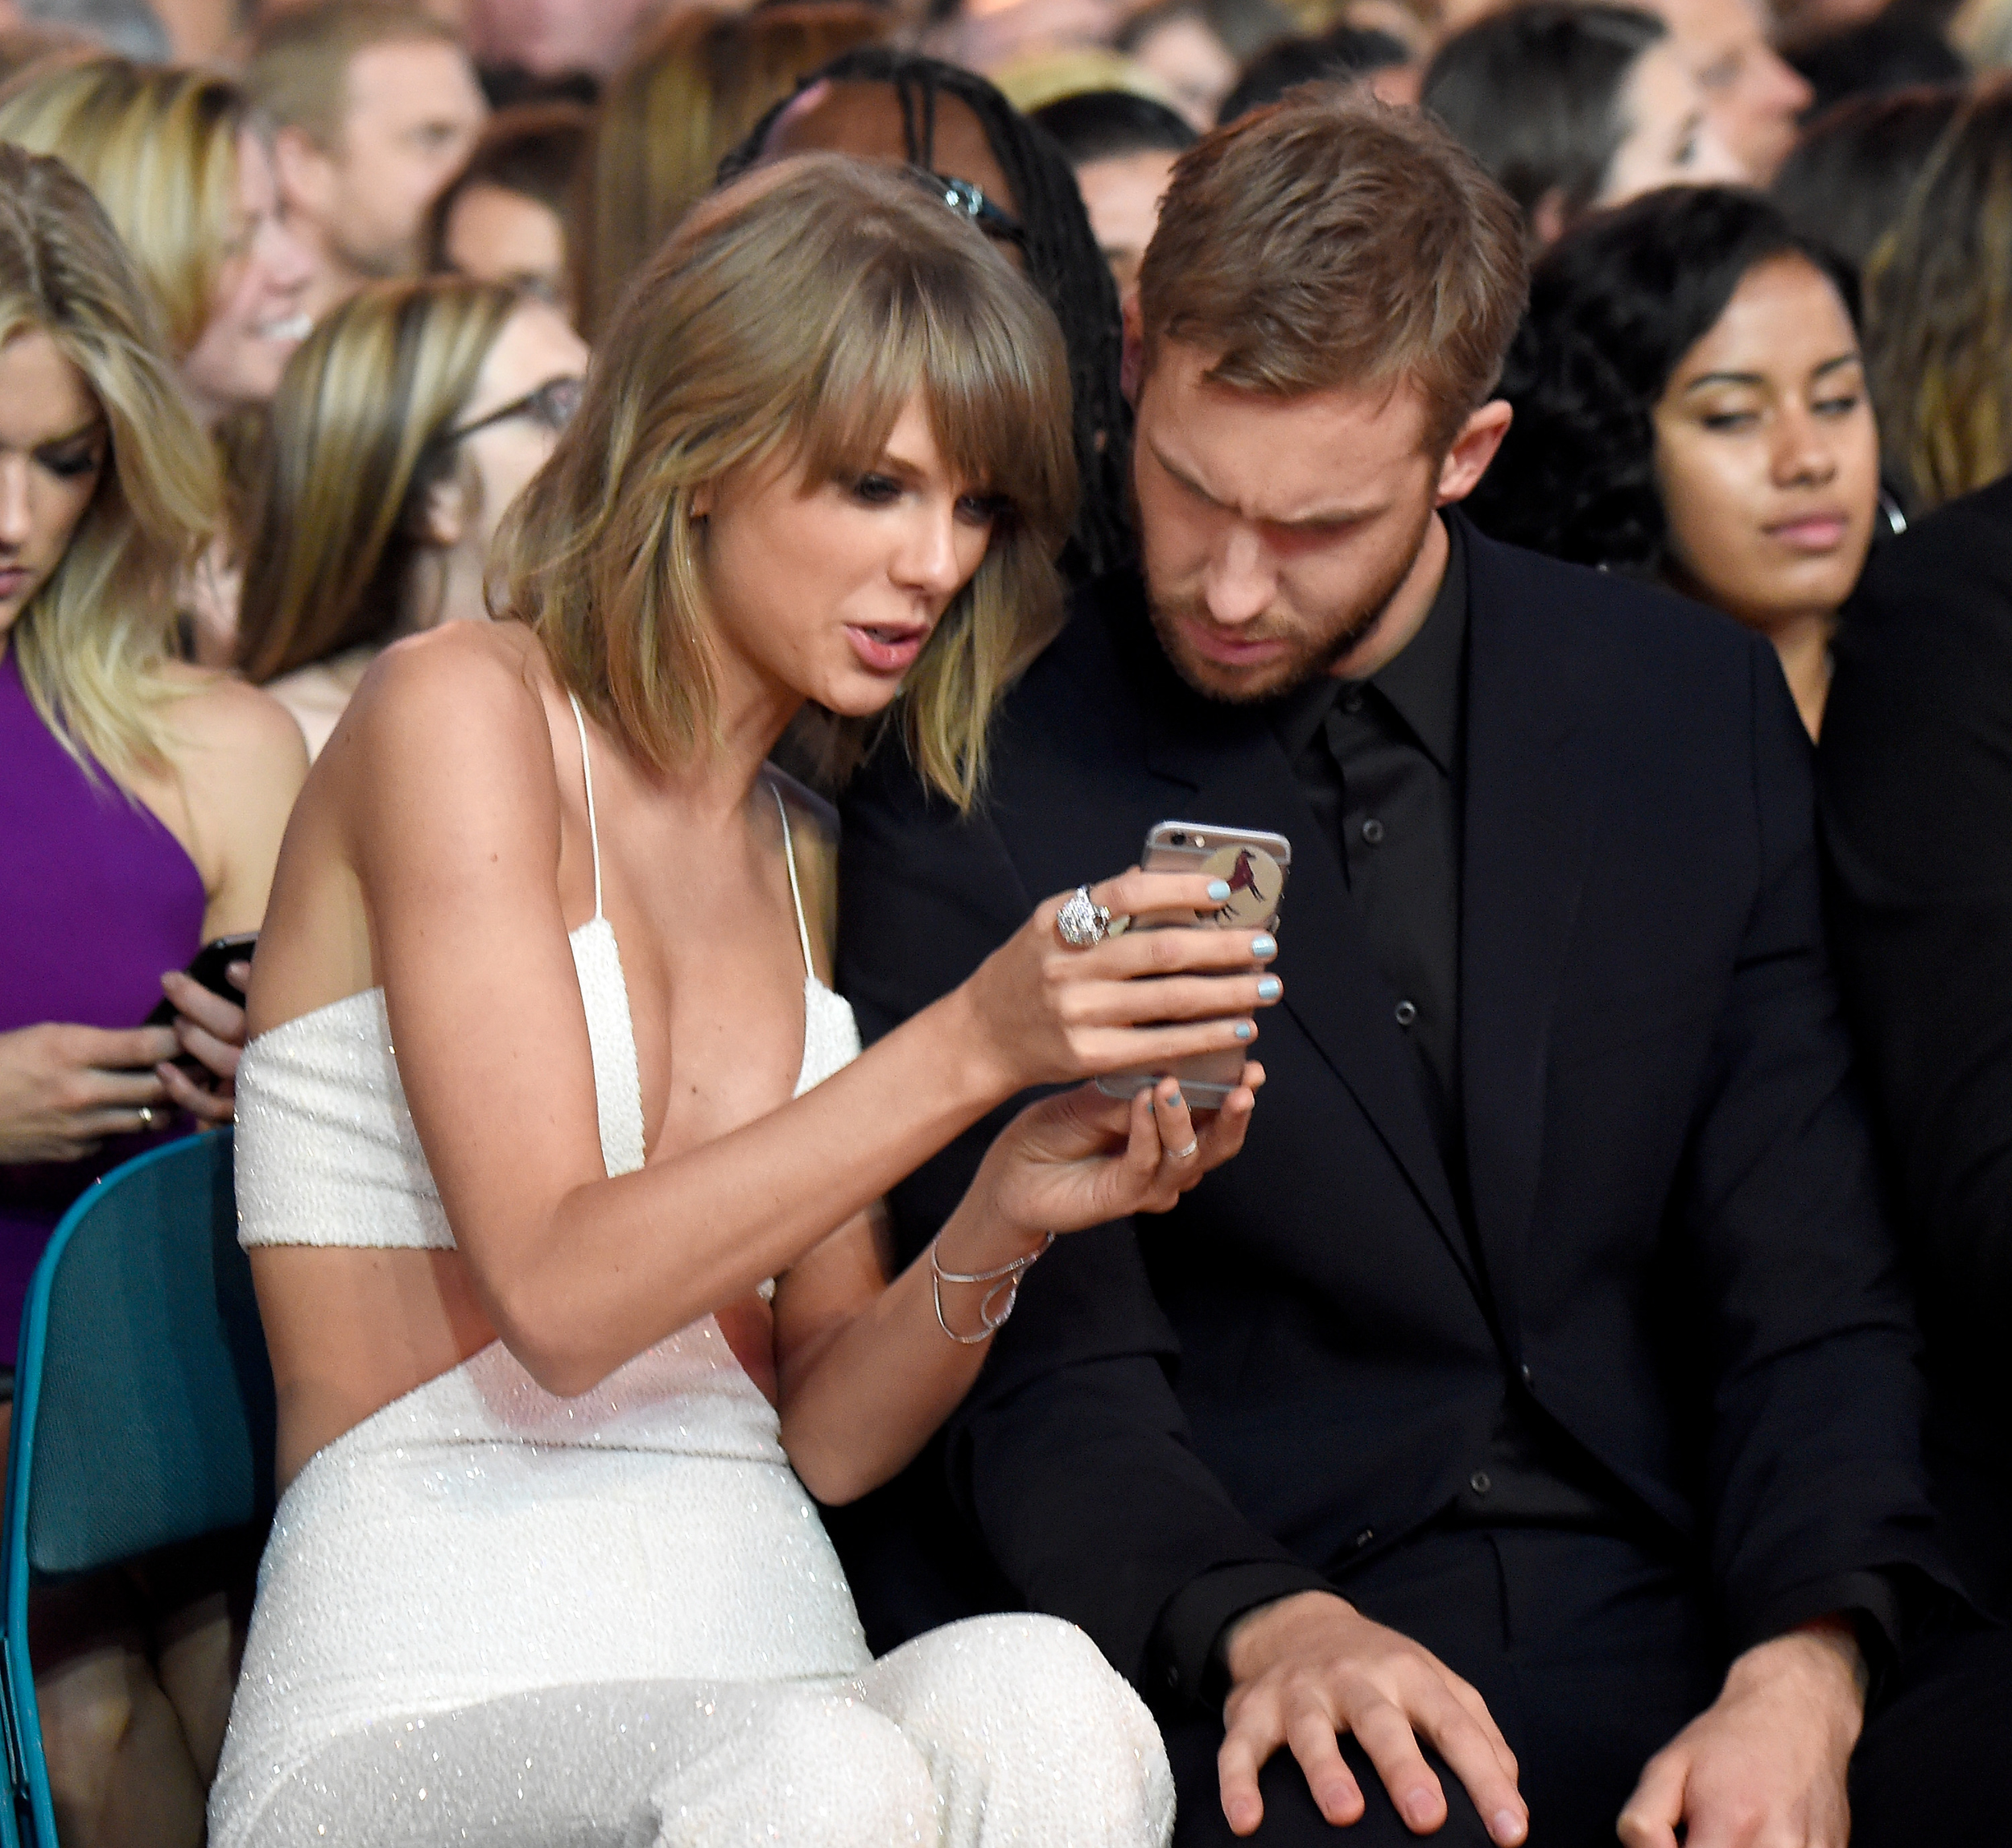 Taylor Swift And Calvin Harris Married: Taylor Swift And Calvin Harris Prove They're The Cutest